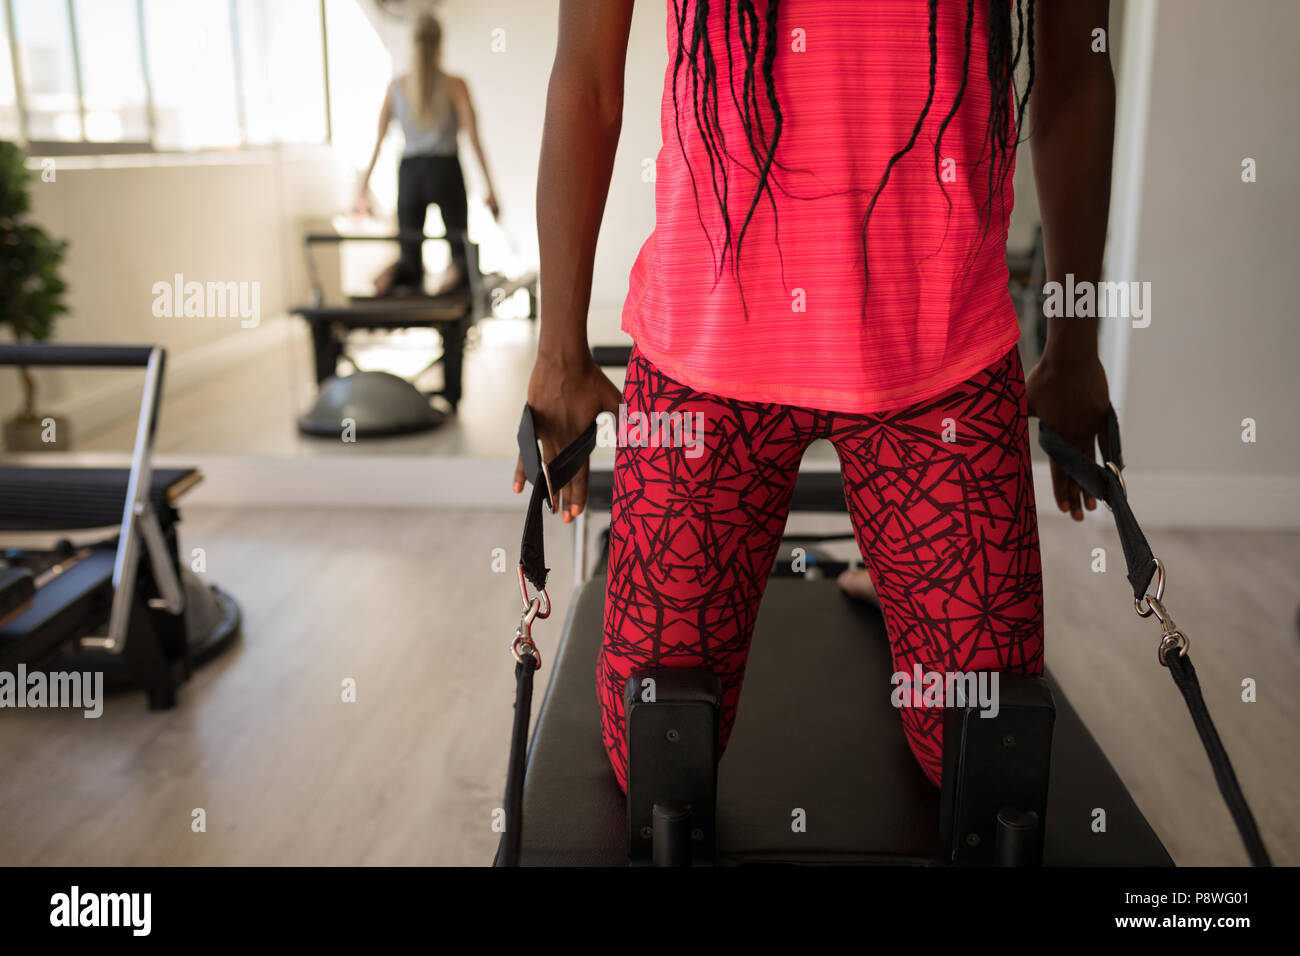 Woman exercising on stretching machine in fitness studio - Stock Image